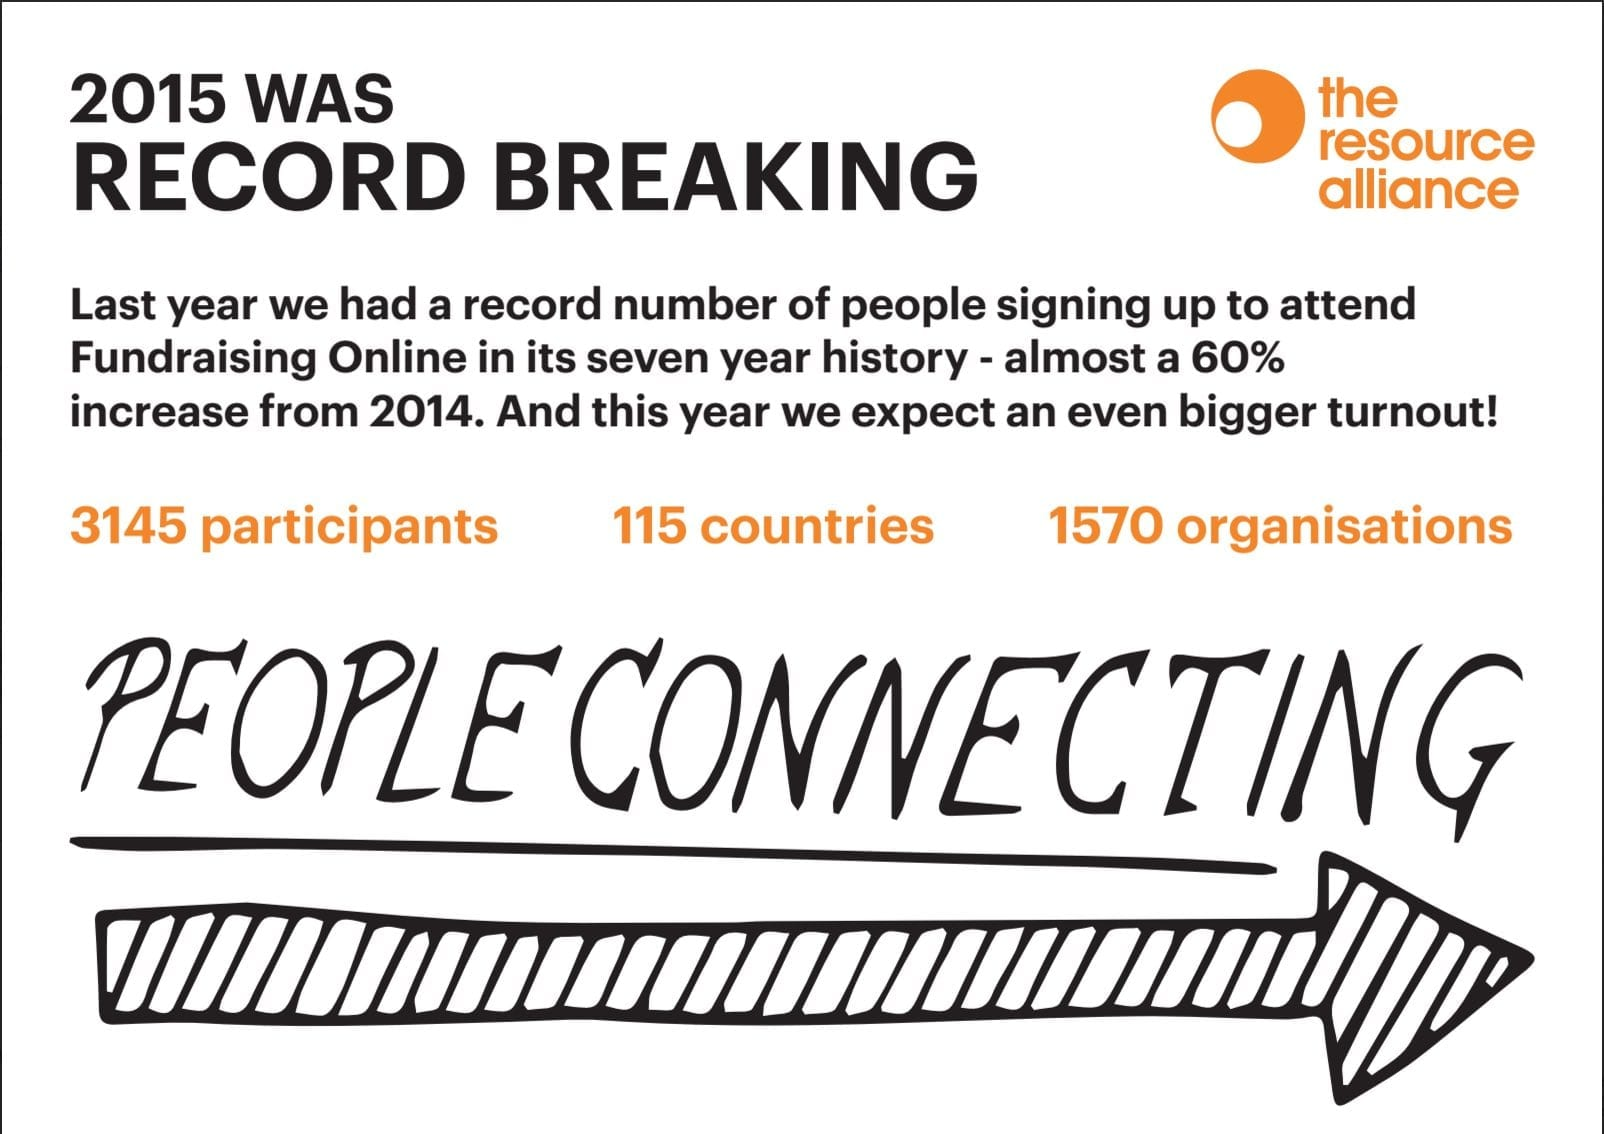 Record-breaking 2015 for Fundraising Online